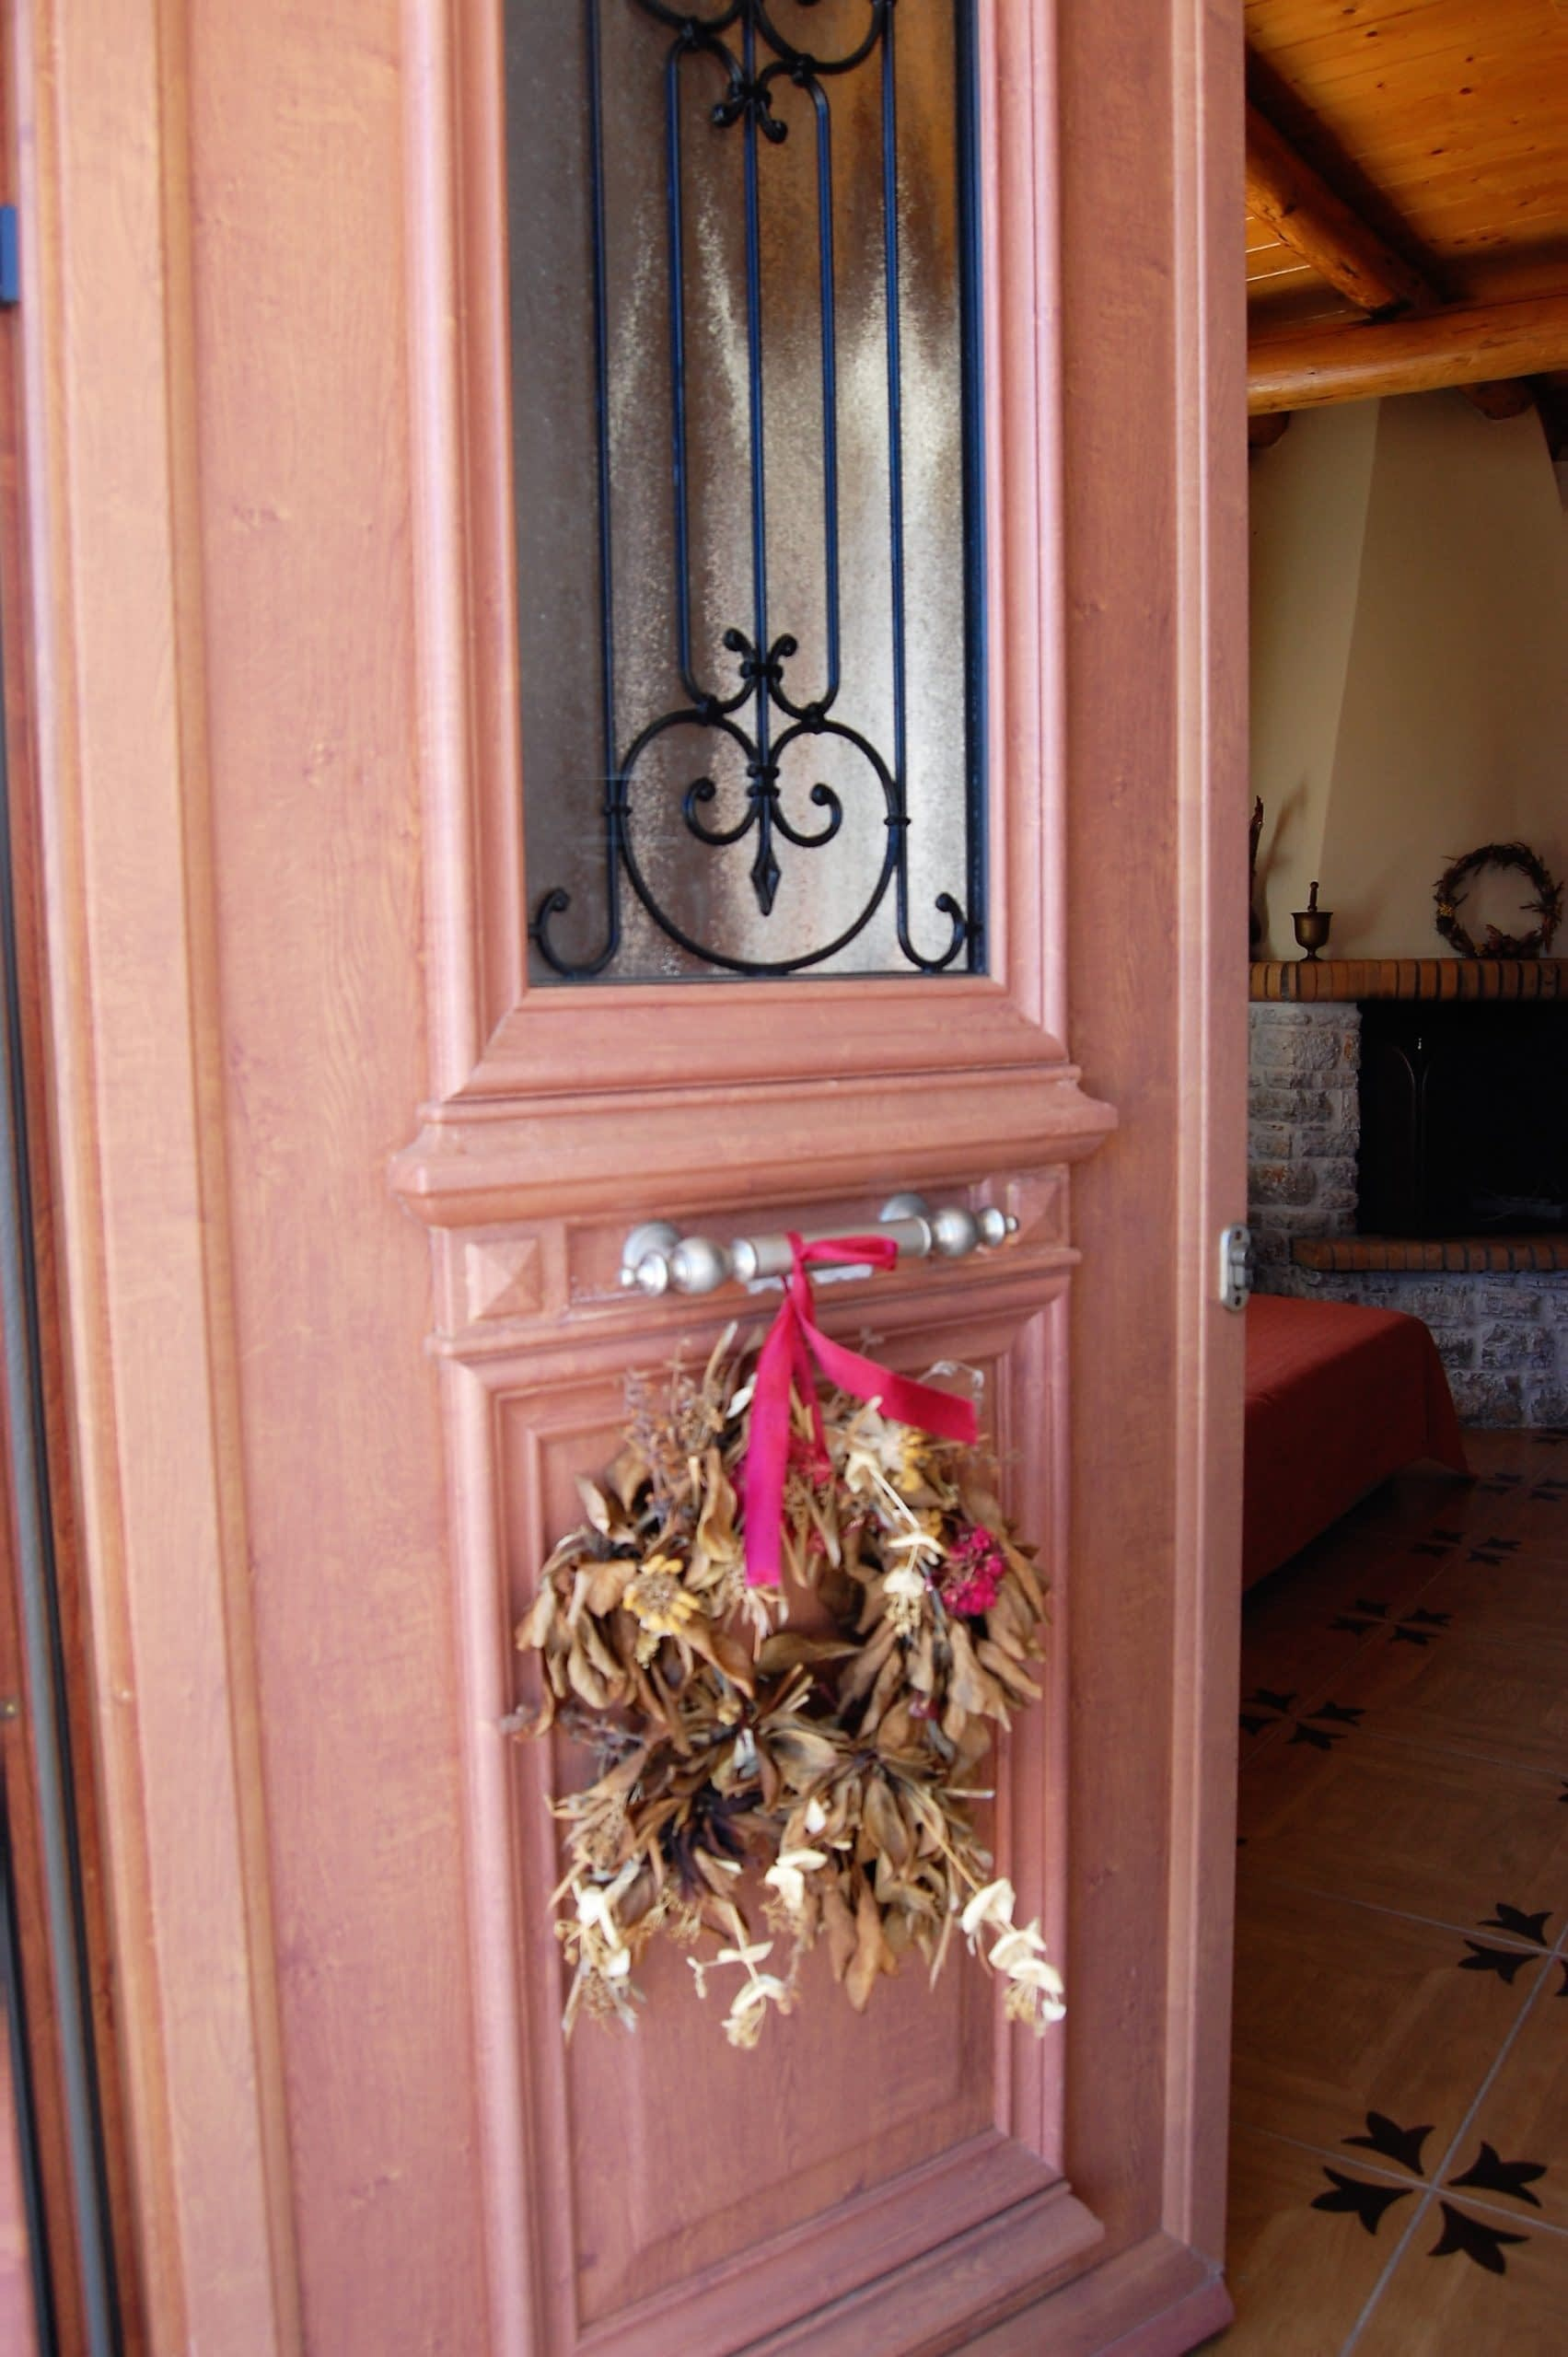 Decorative front door of stone house for rent Ithaca Greece